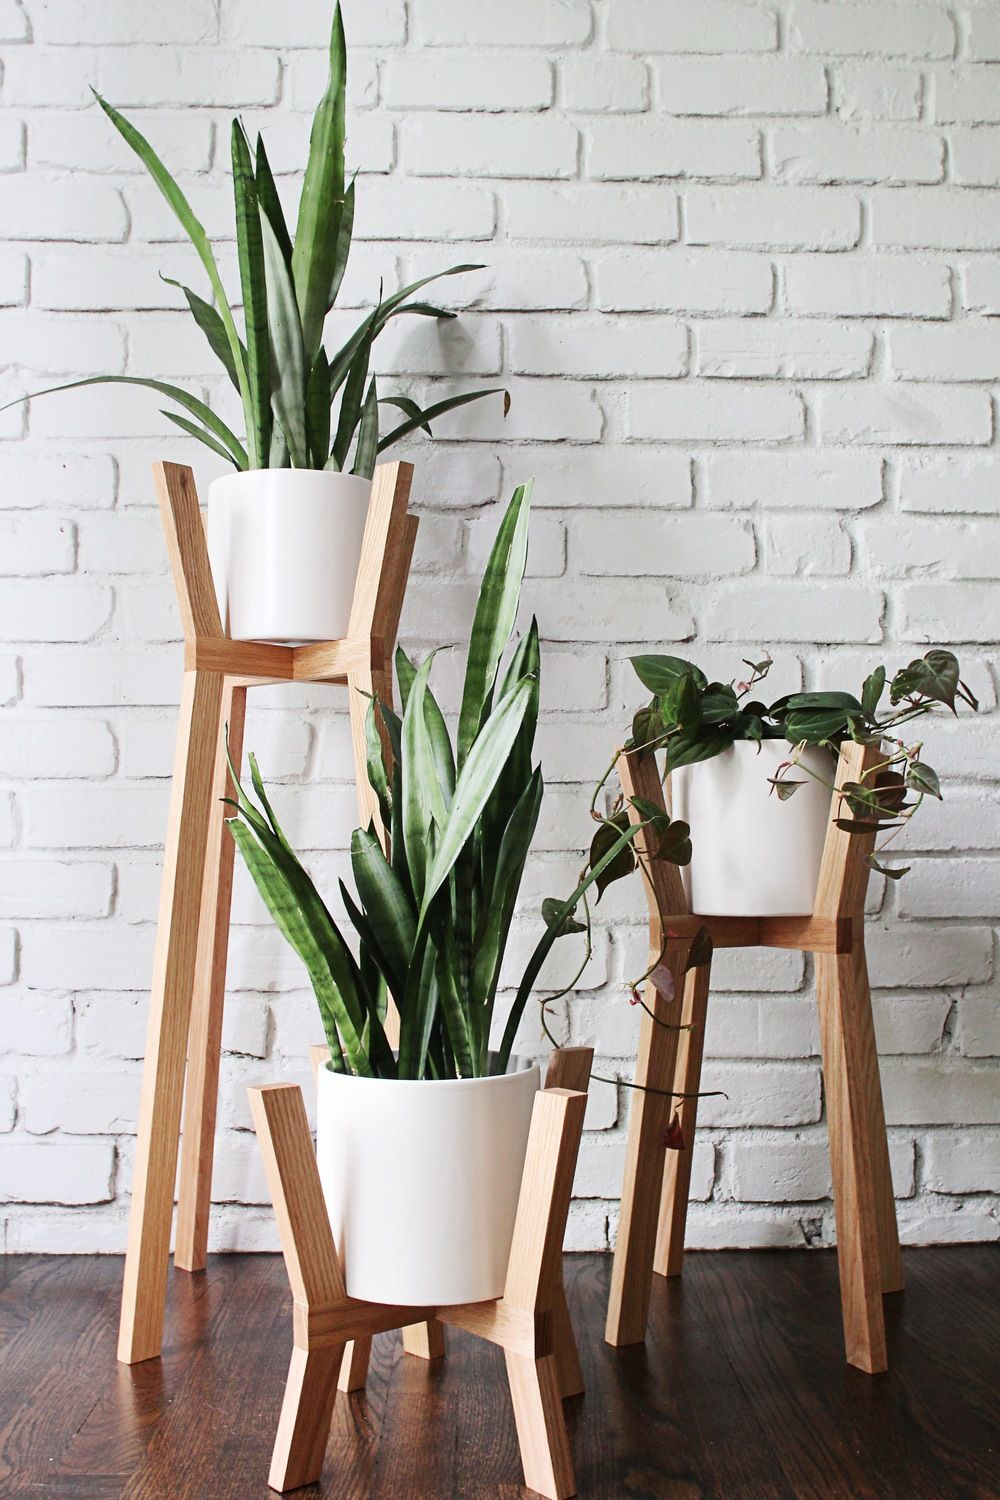 Wood stand for plants by fern - Transform your home into a tropical paradise | Aliz's Wonderland